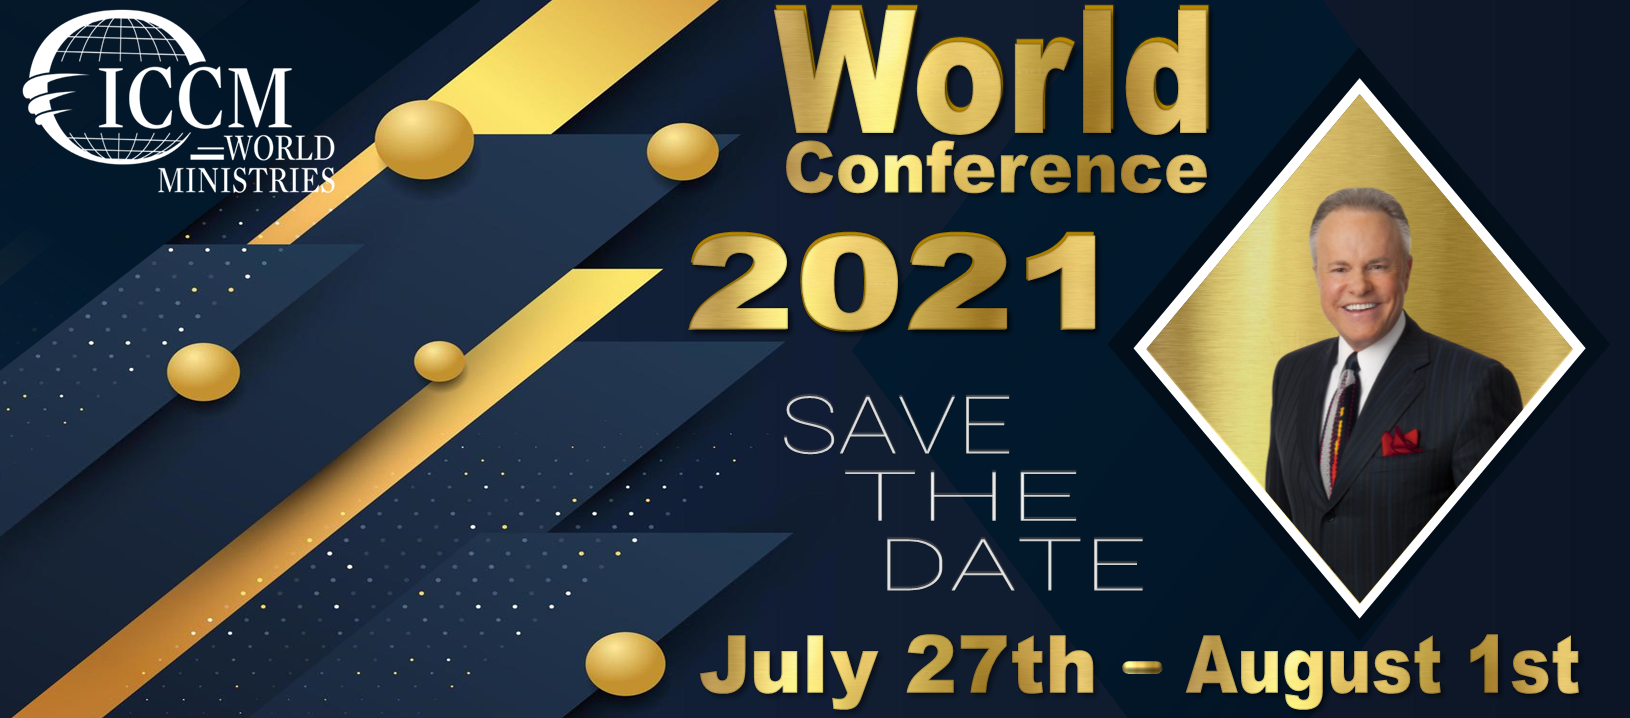 2021 World Conference July 27th - August 1st